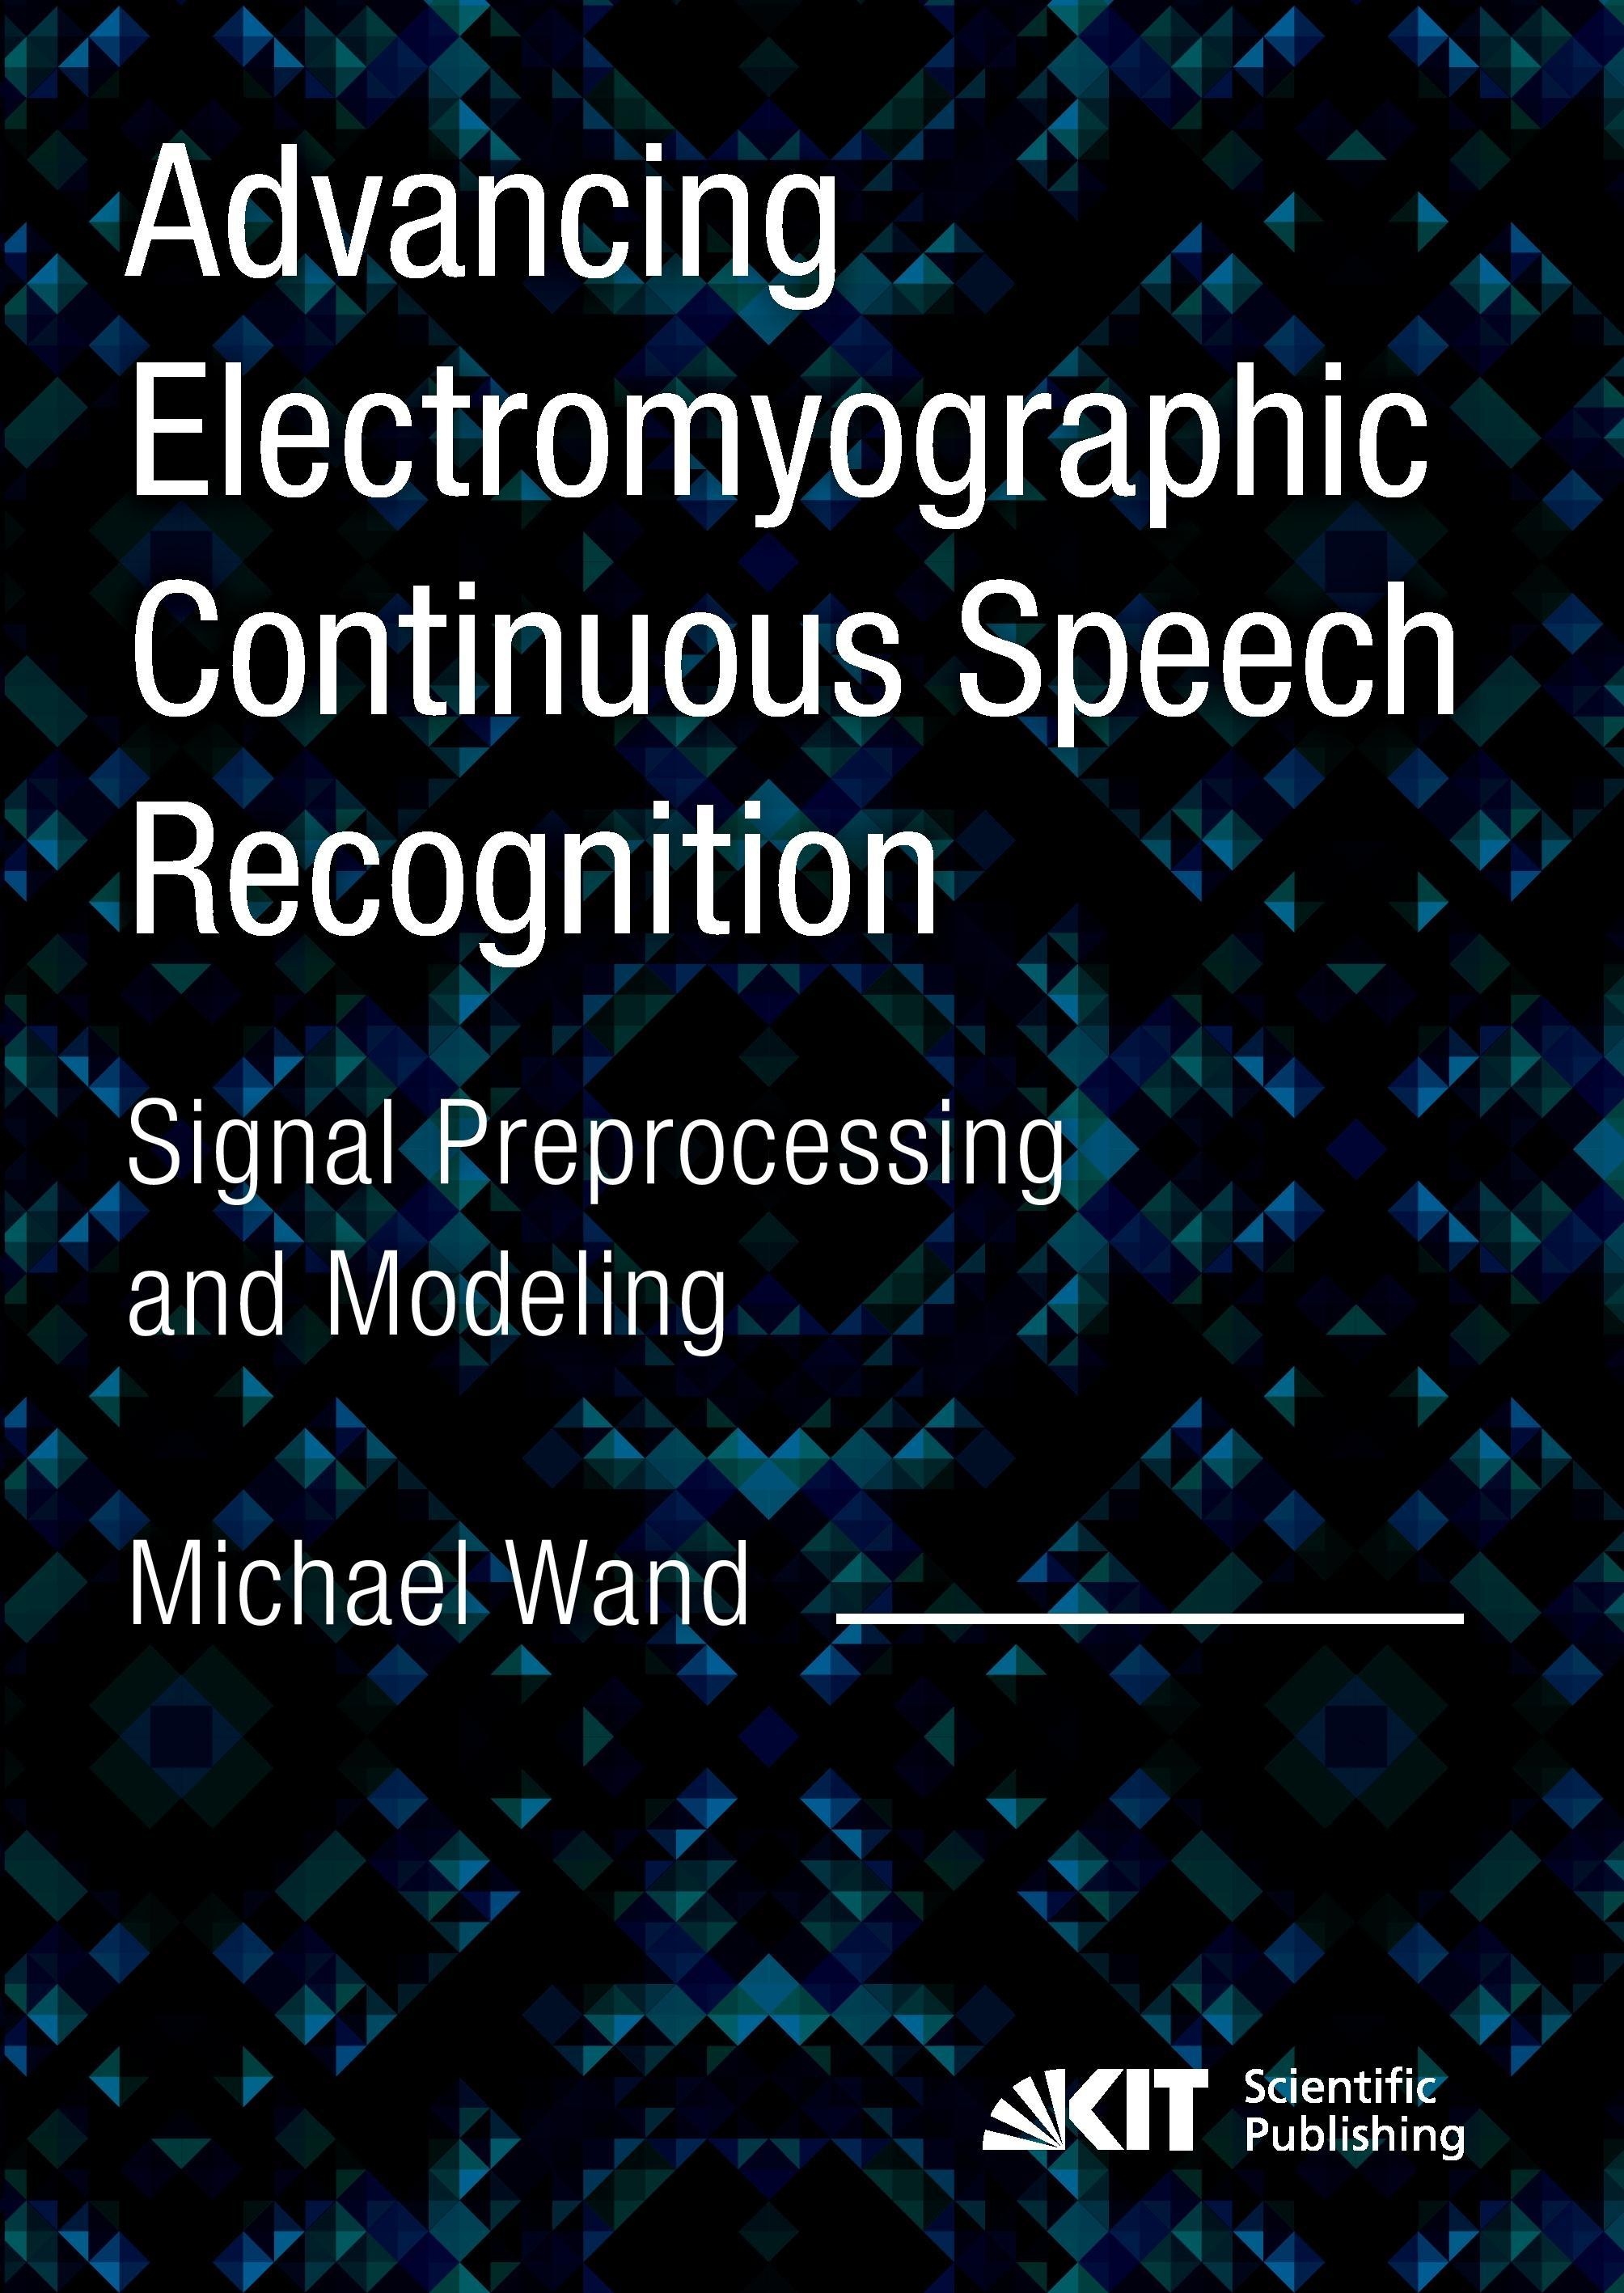 Advancing Electromyographic Continuous Speech Recognition: Signal Preproces ...